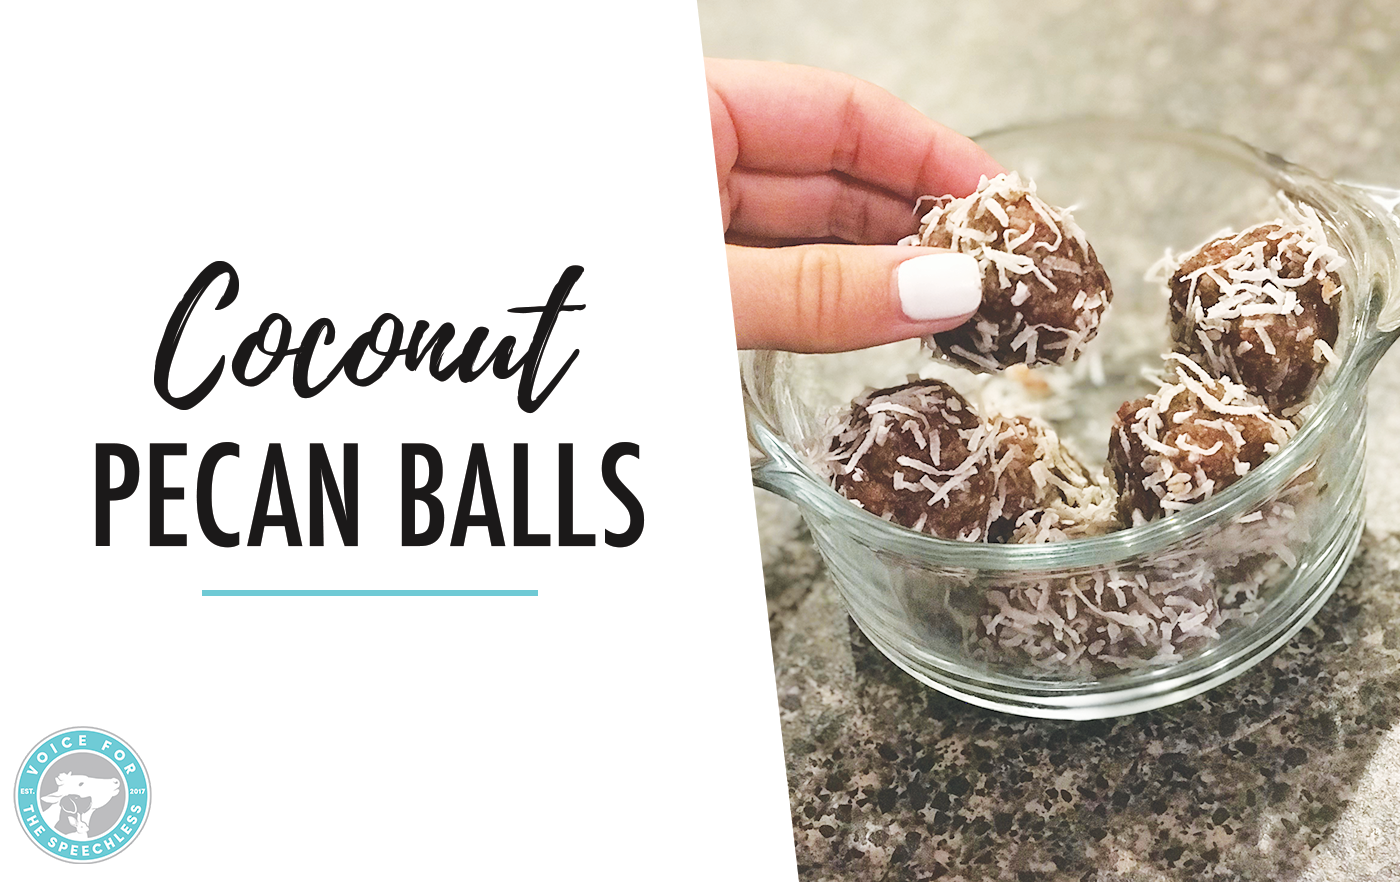 Vegan Healthy Snack: Coconut Pecan Balls